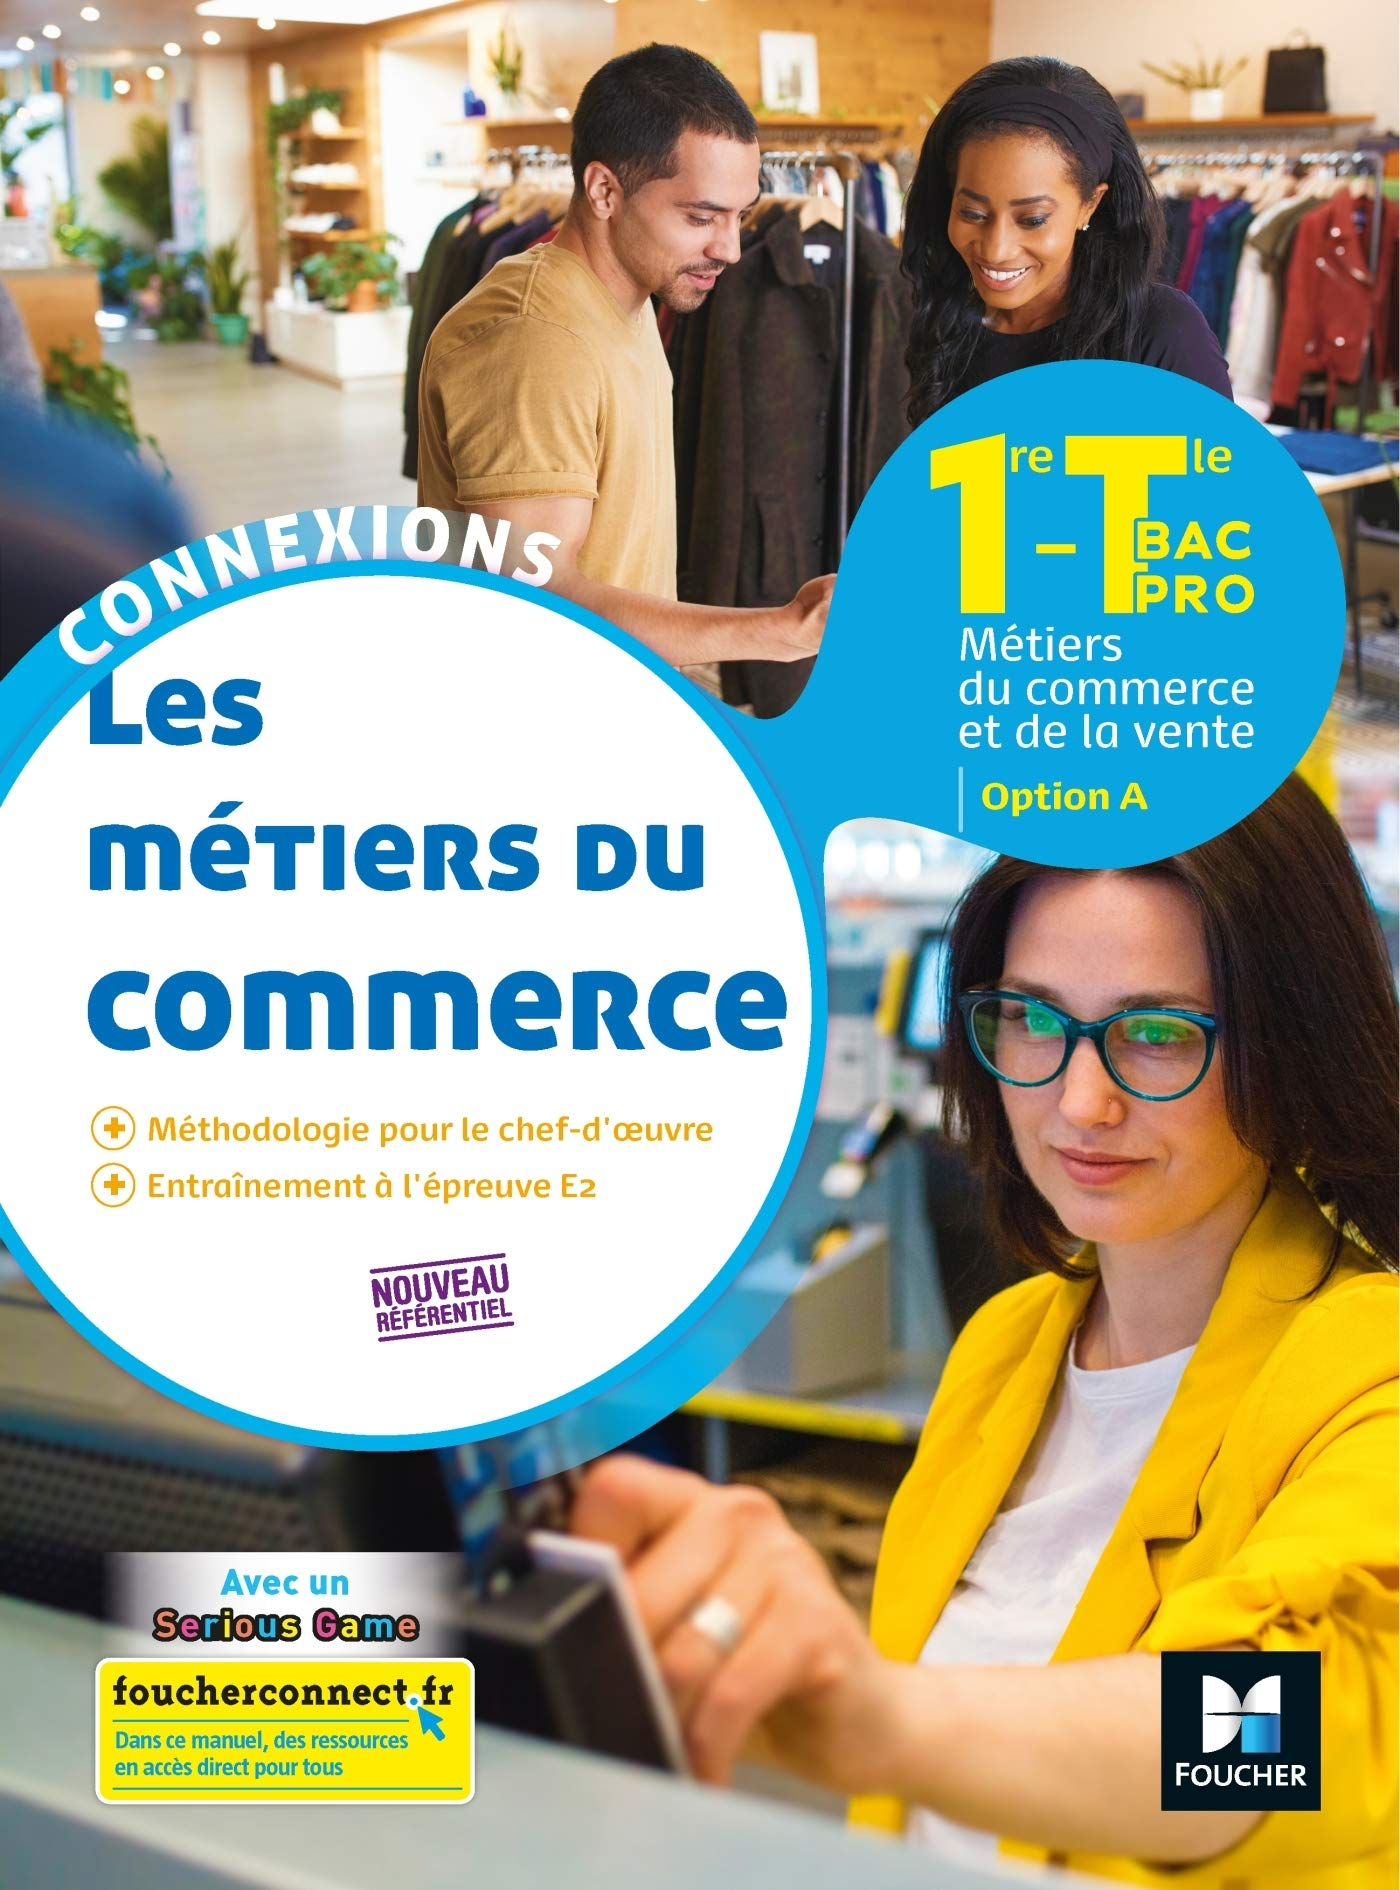 Download Connexions  METIERS DU COMMERCE Option A 1reTle BAC PRO  Ed2020  Livre Lve 